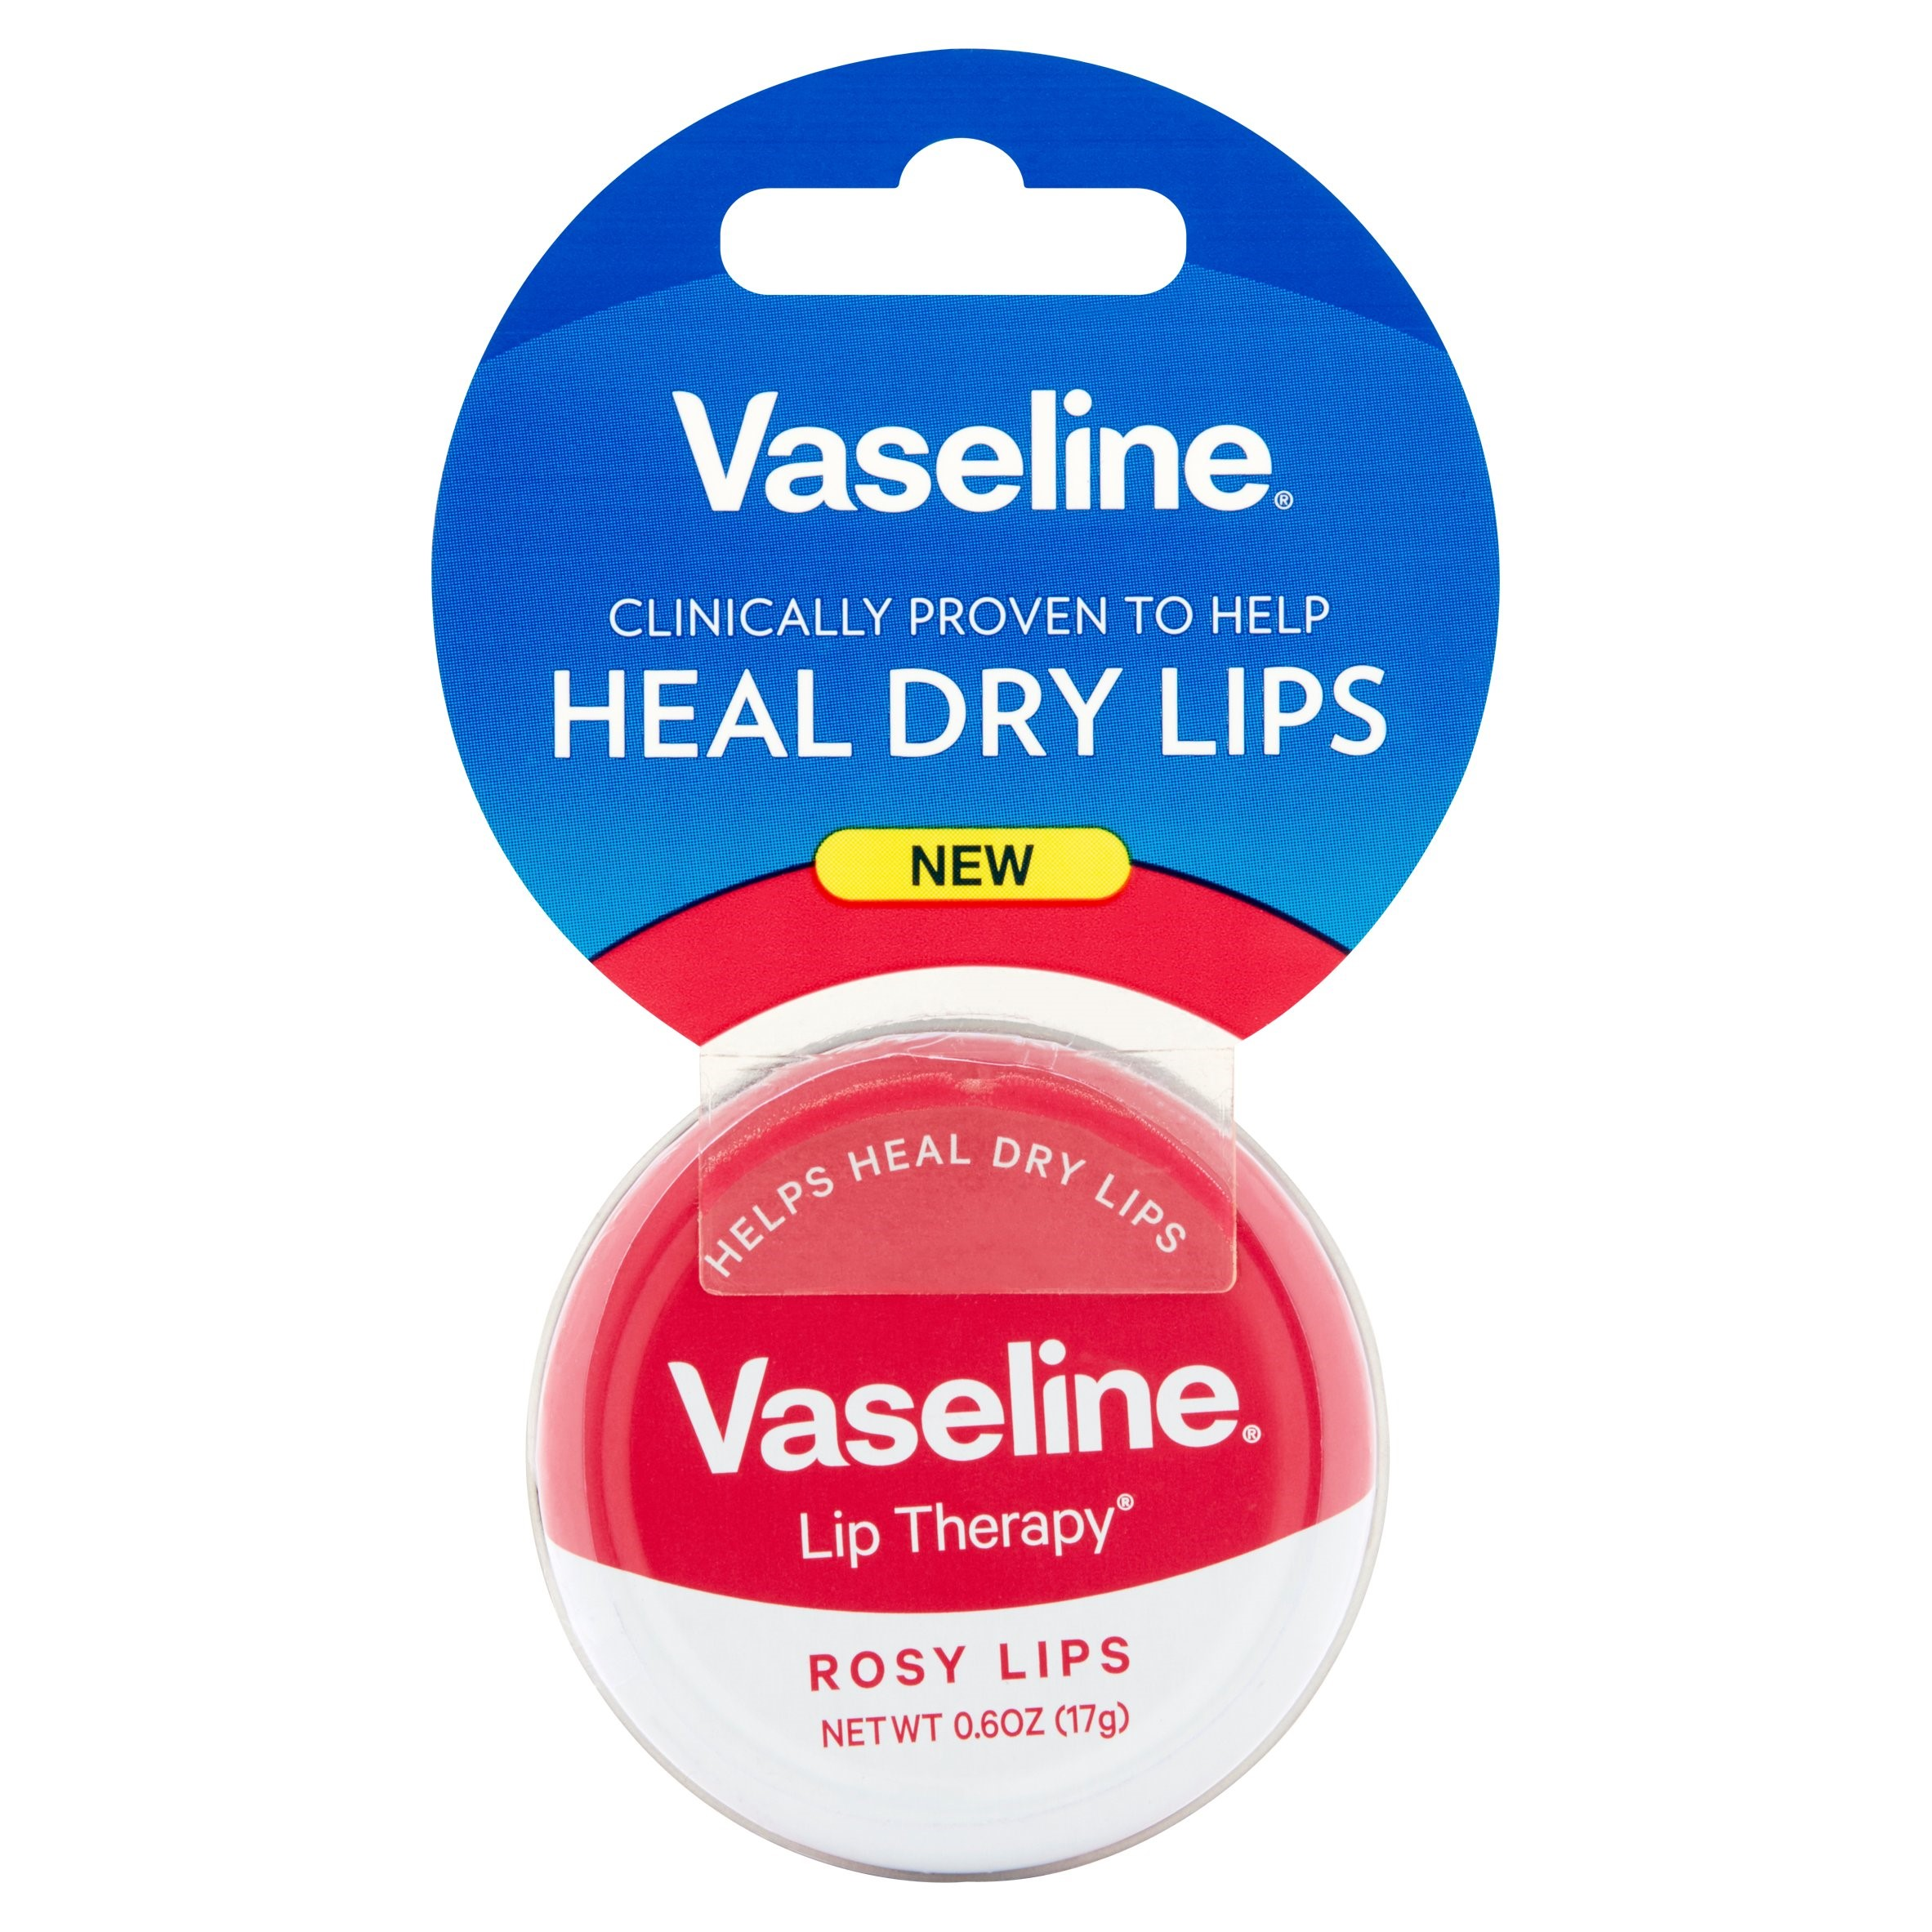 Vaseline Lip Therapy Rosy Lips Lip Balm Tin 0.6 oz